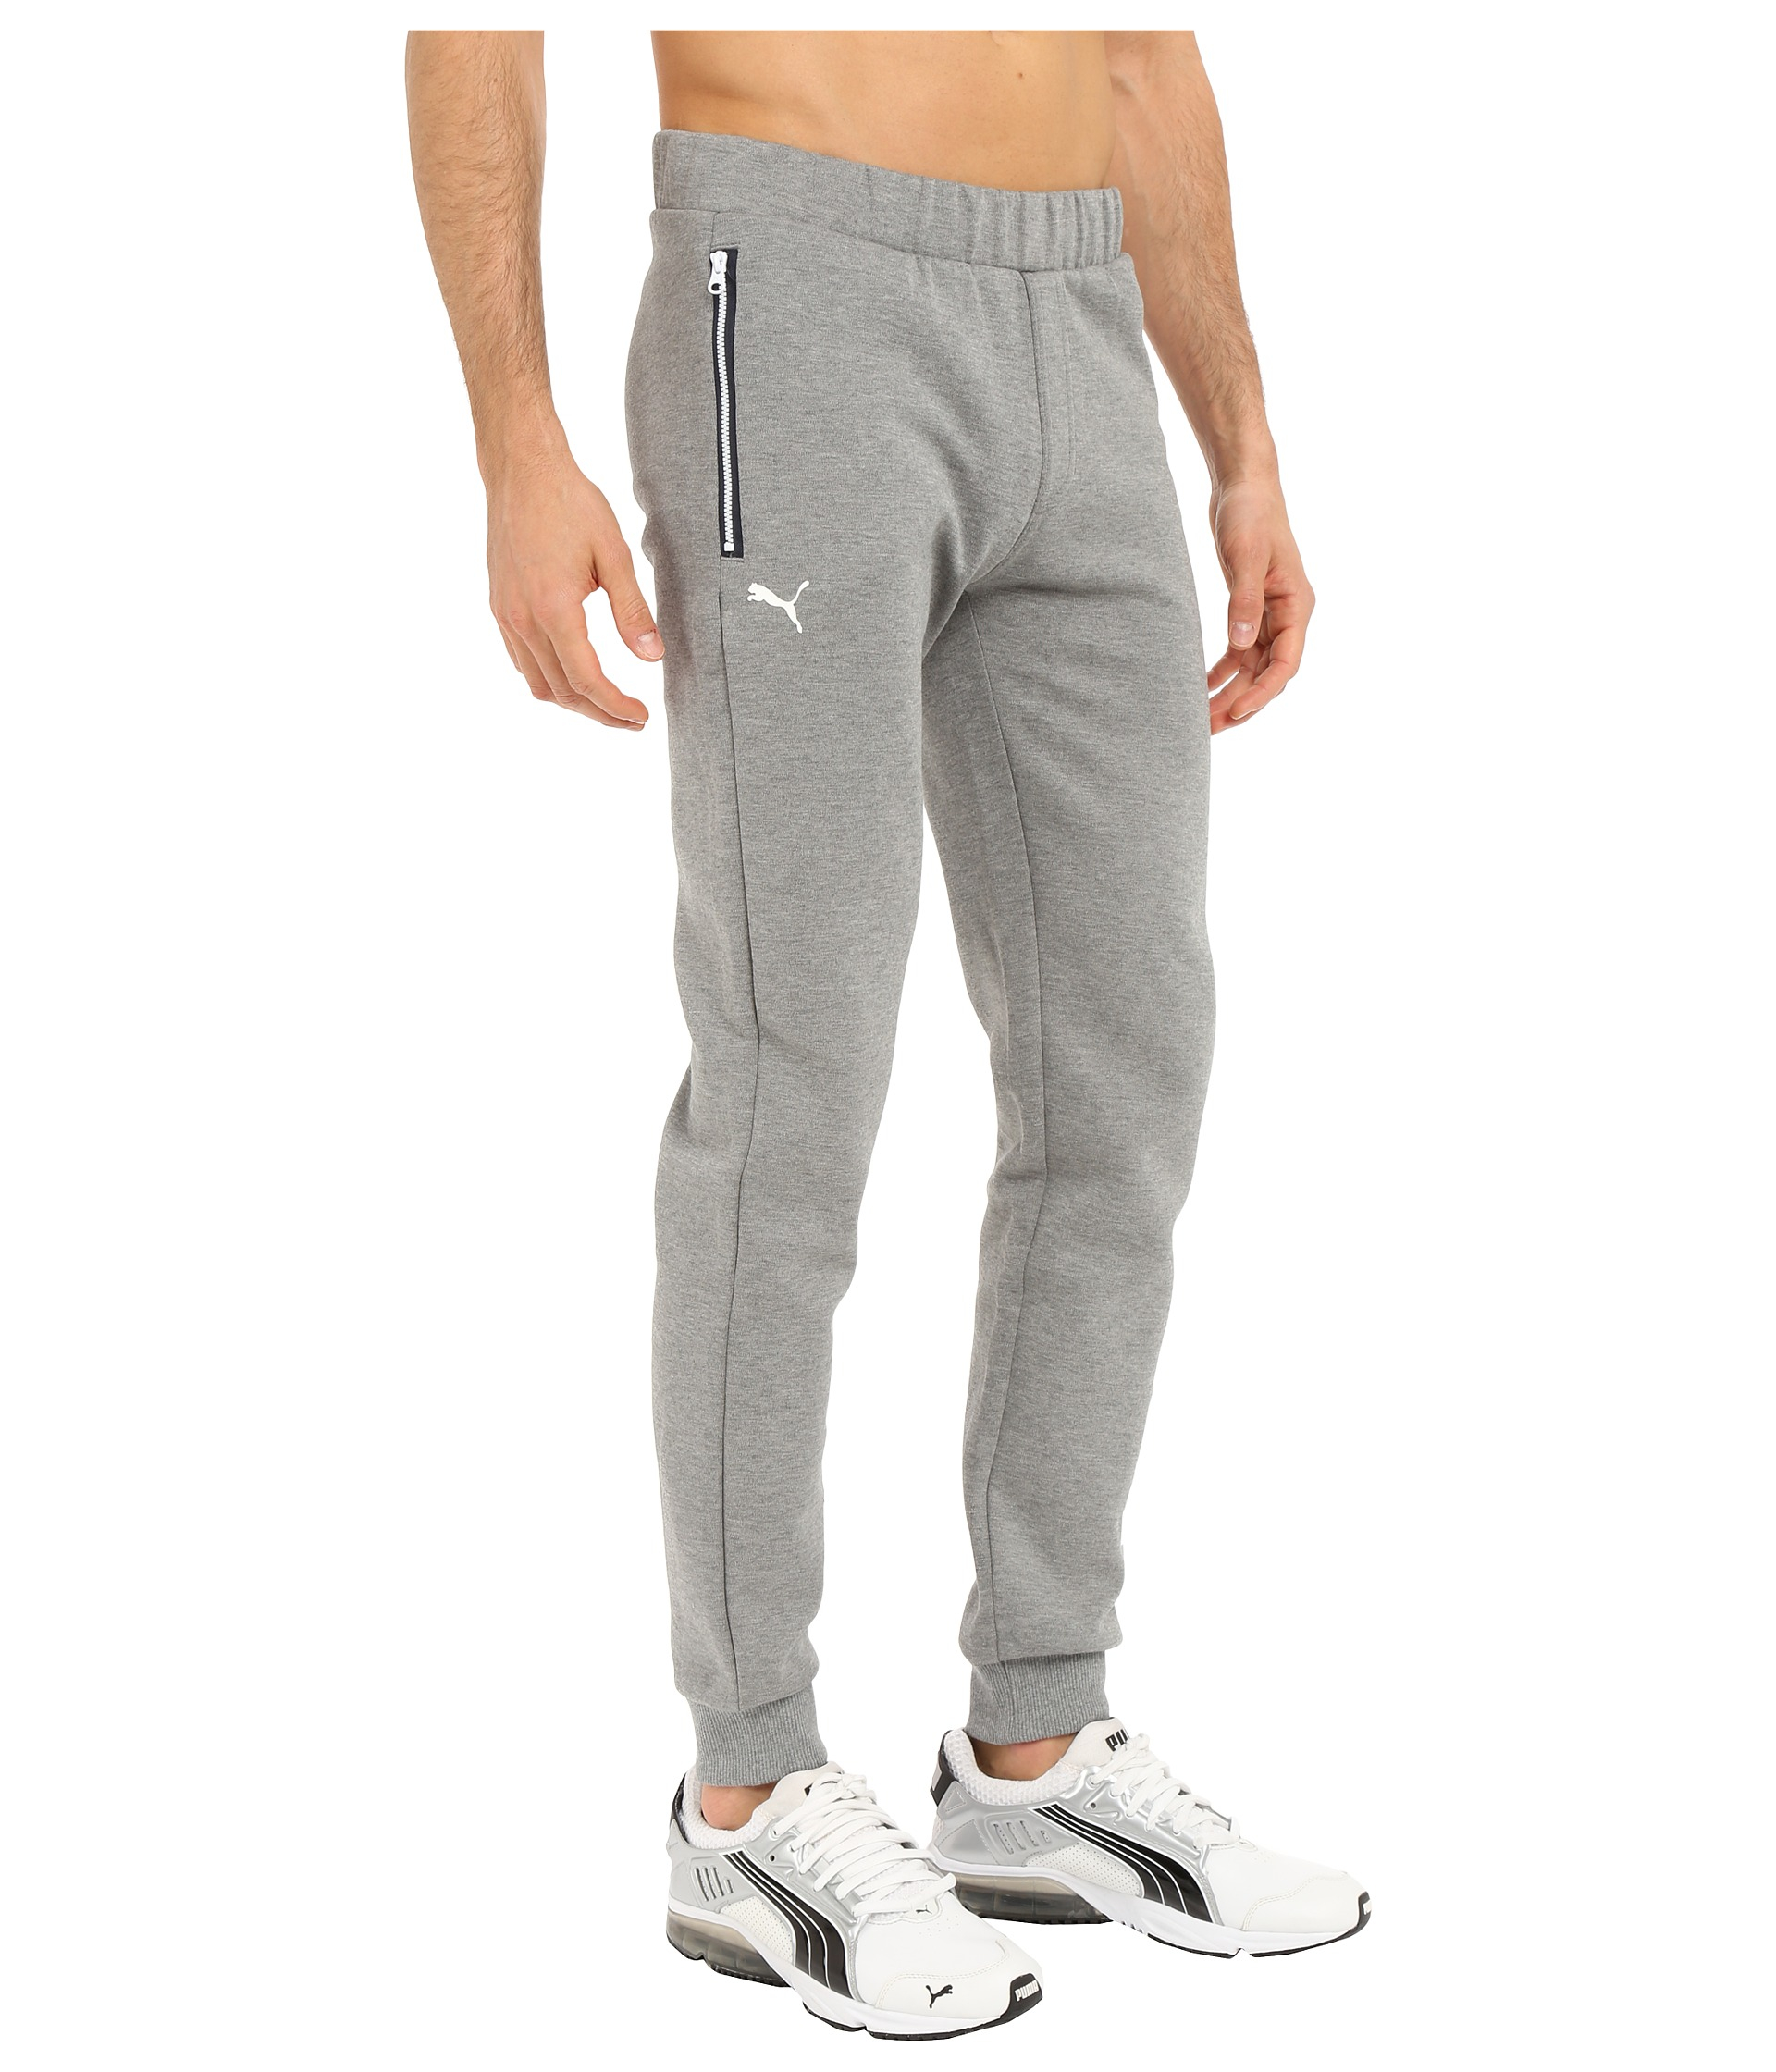 Puma Bmw Msp Sweat Pants Closed In Gray For Men Lyst